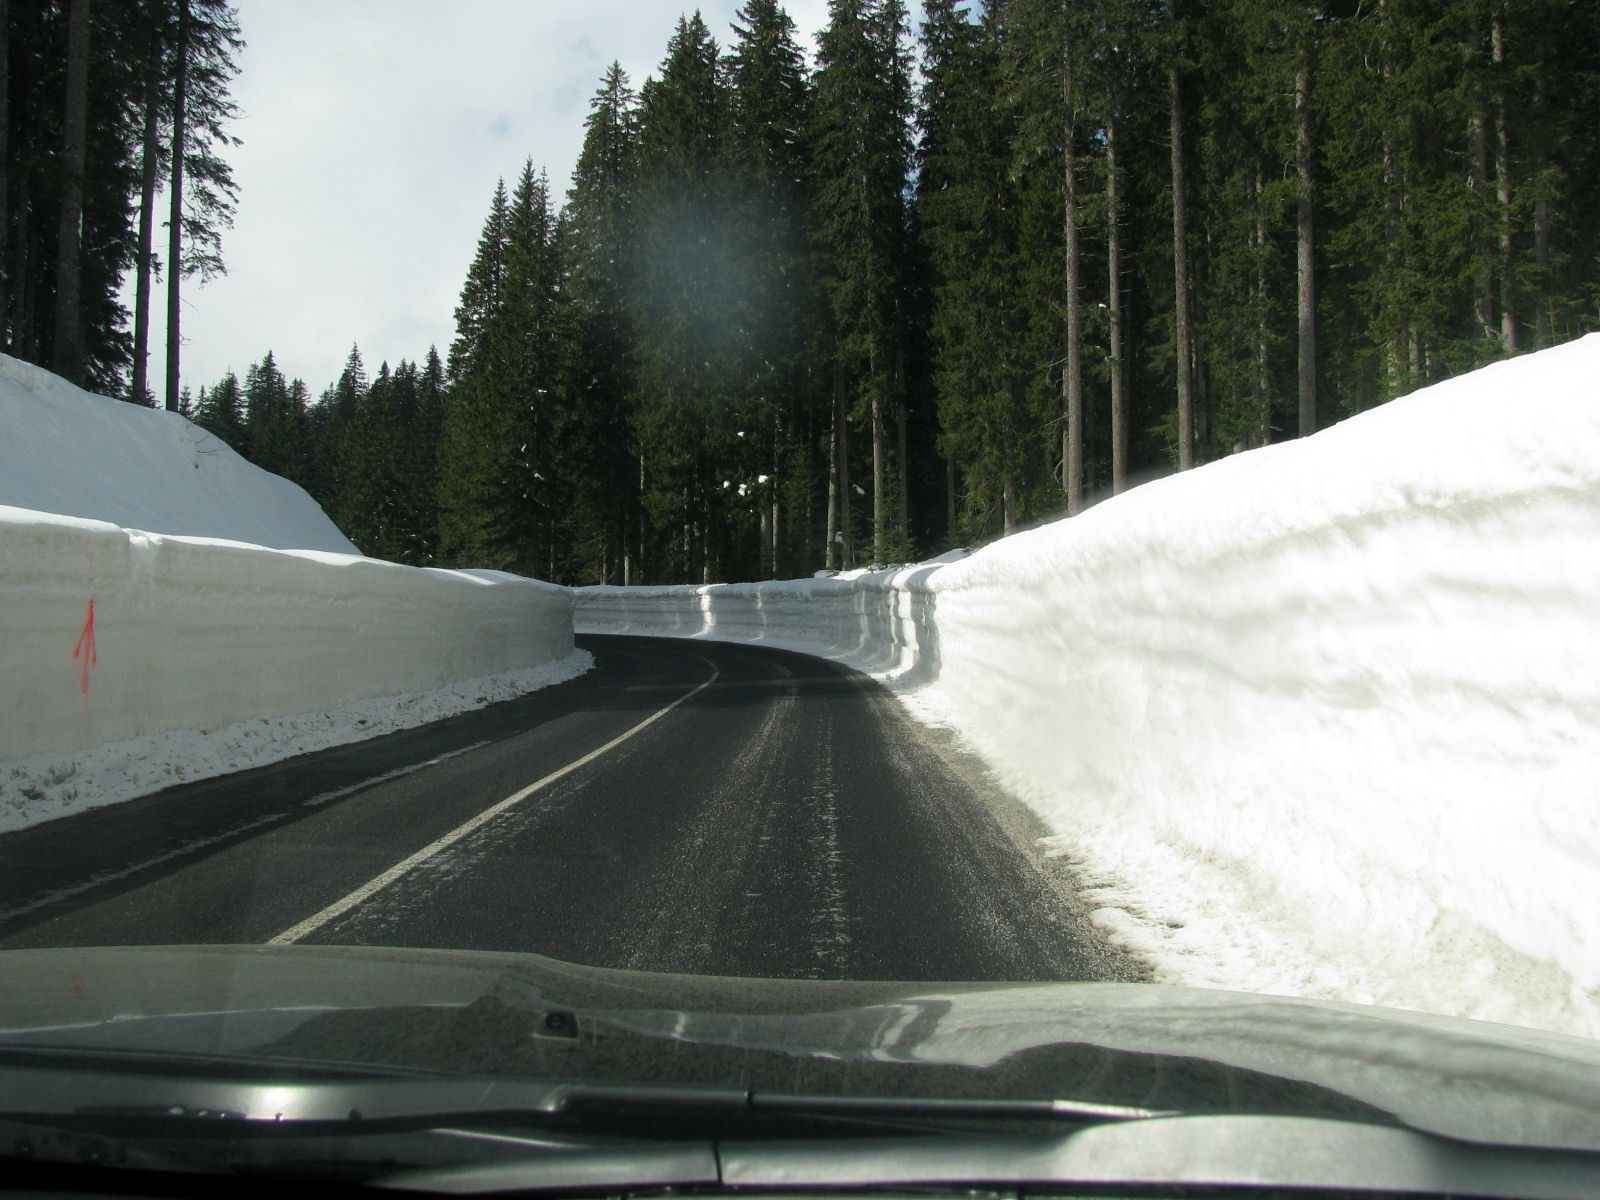 Plowed road to Pokljuka in the winter season